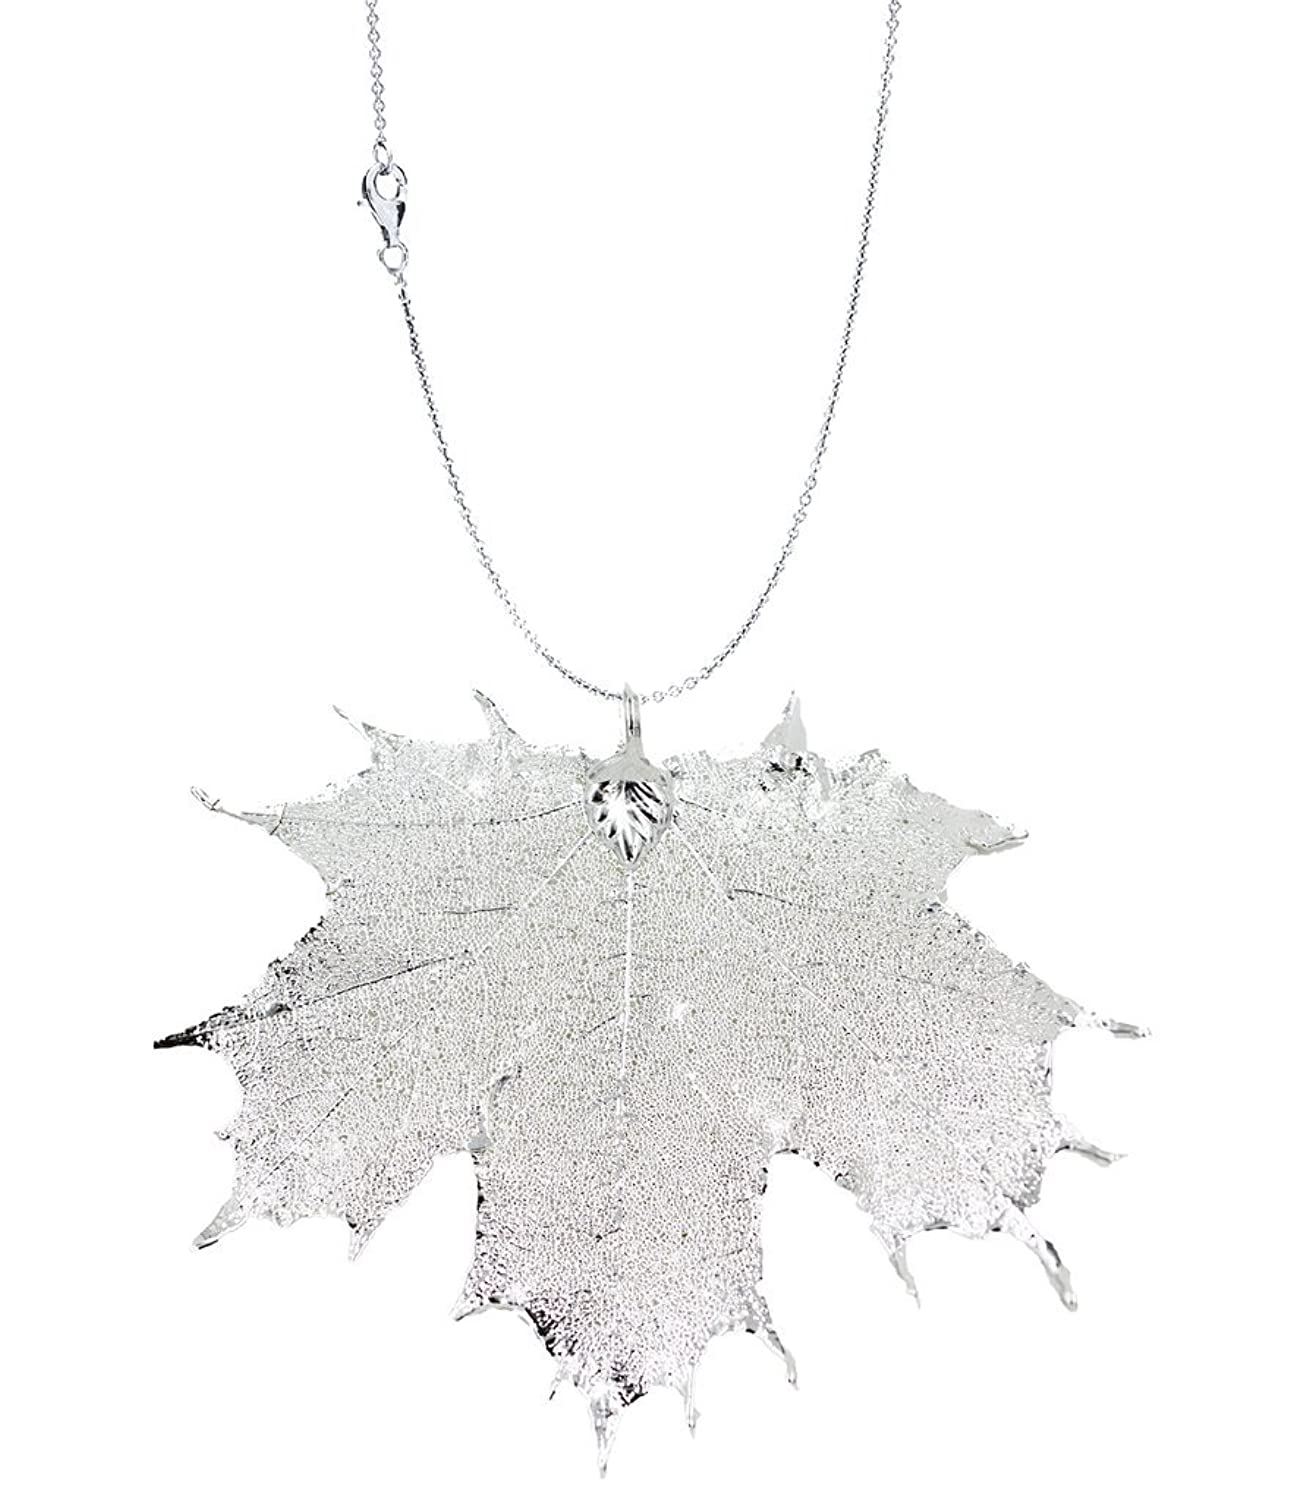 gold uk mistral accessories from jewellery pendant necklaces maple necklace rose leaf